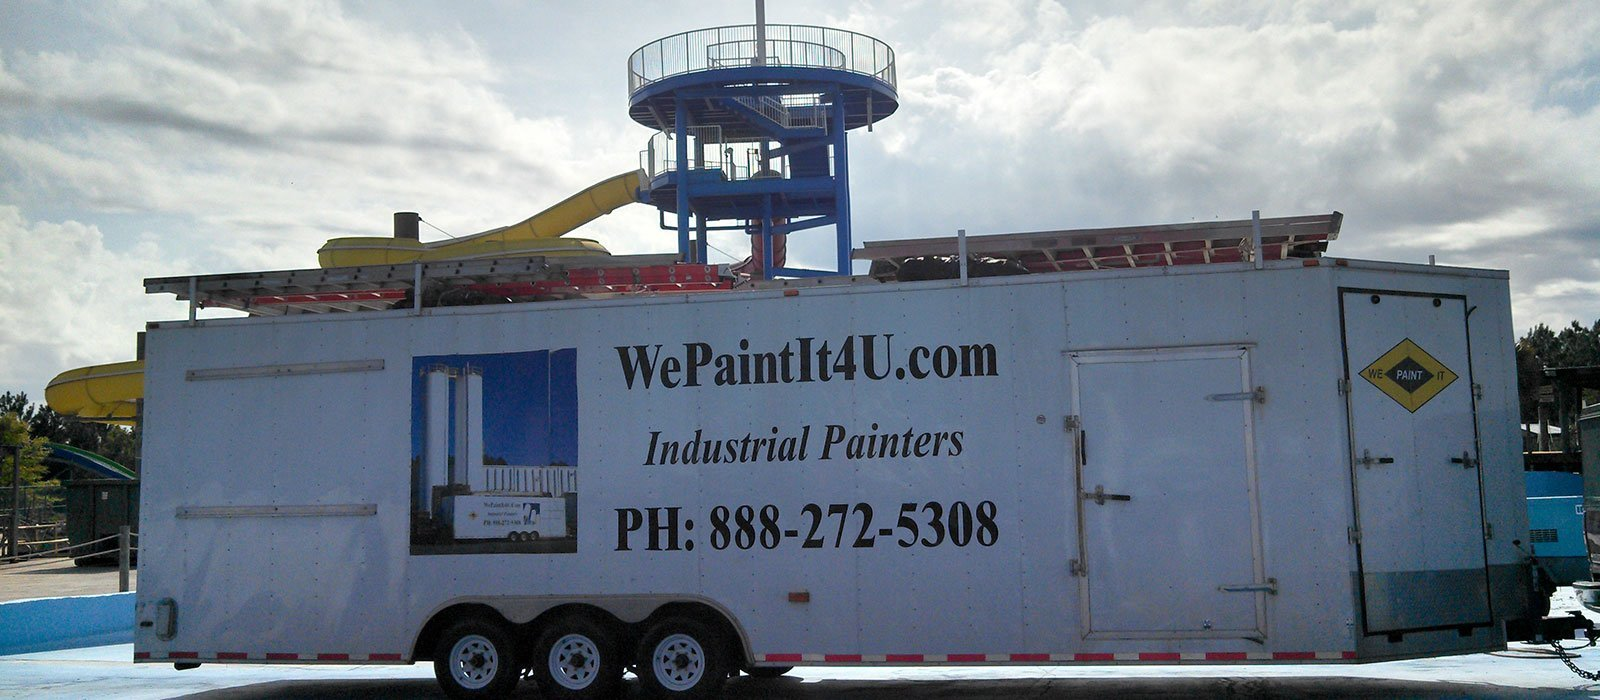 trailer in front of painted slide at water park